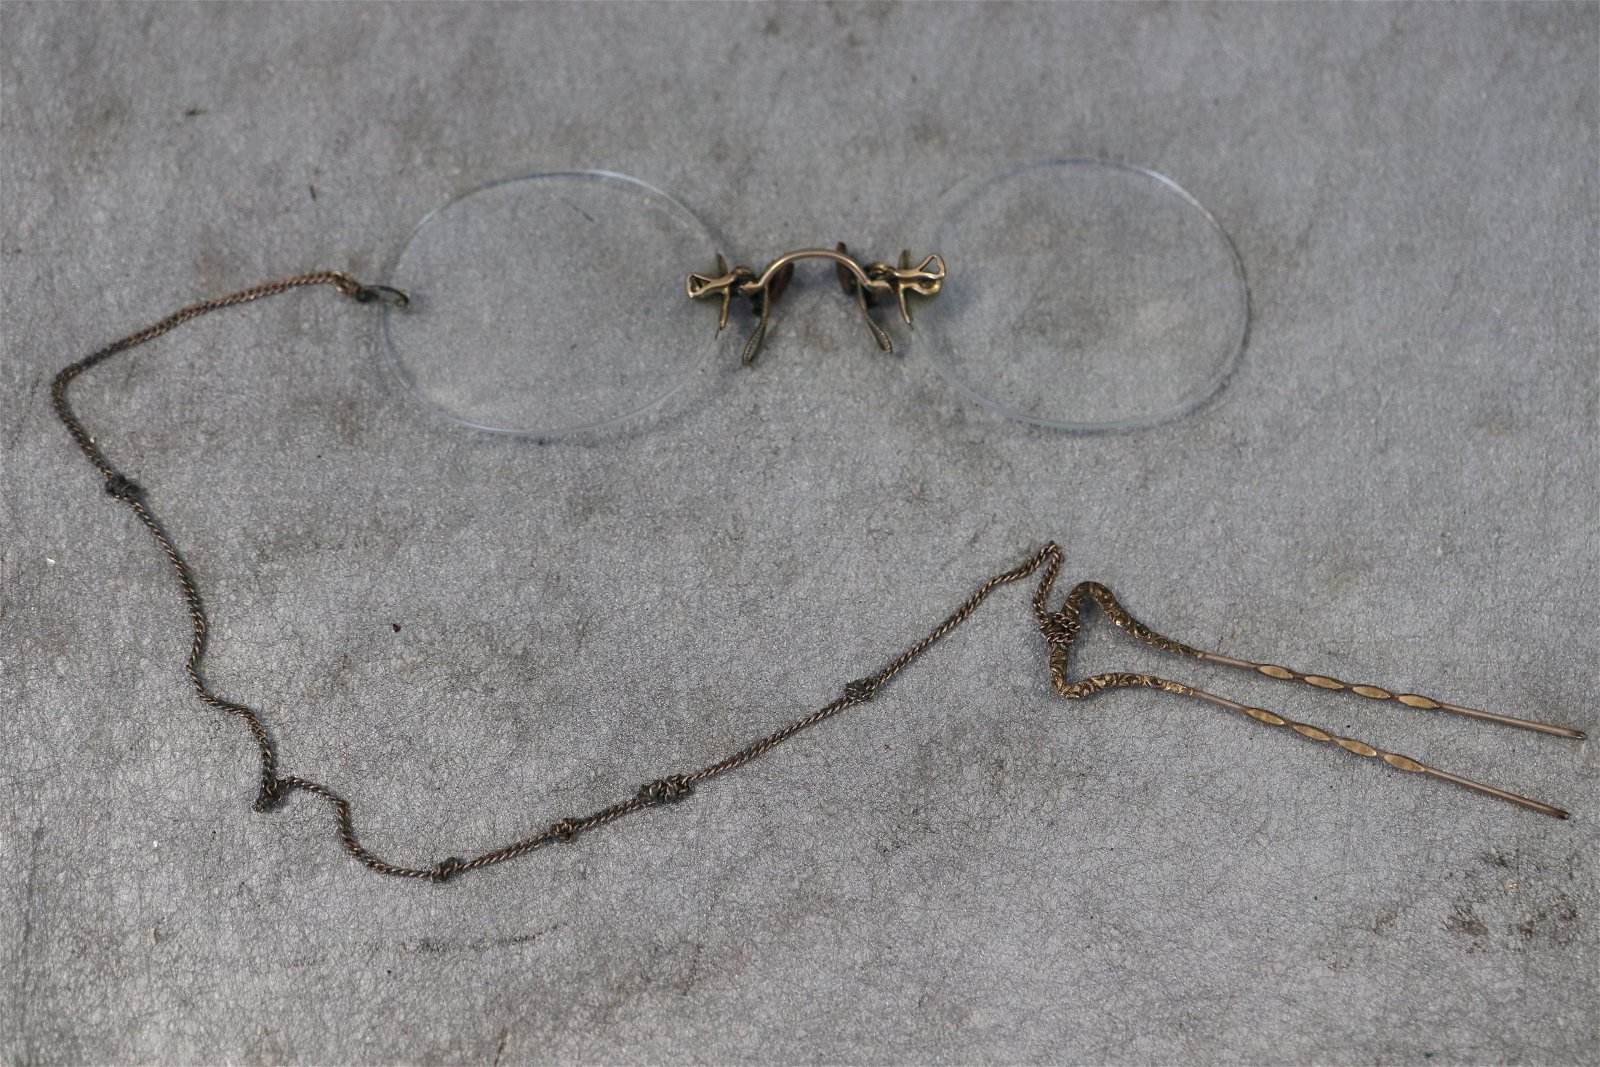 Antique Prince Nez Spectacles, Hair Pin & Chain